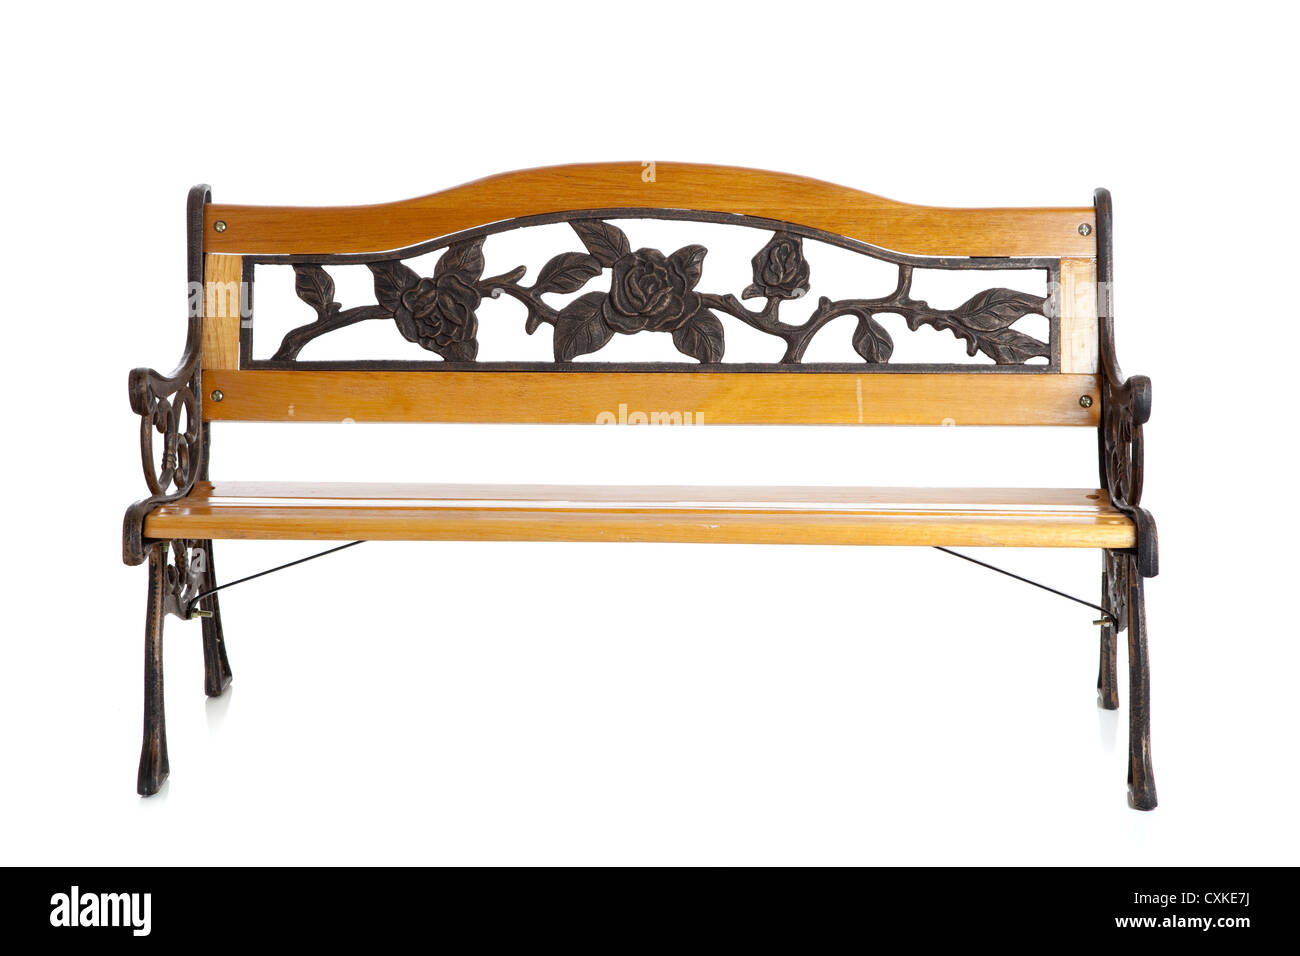 Wooden and wrought iron bench on a white background - Stock Image